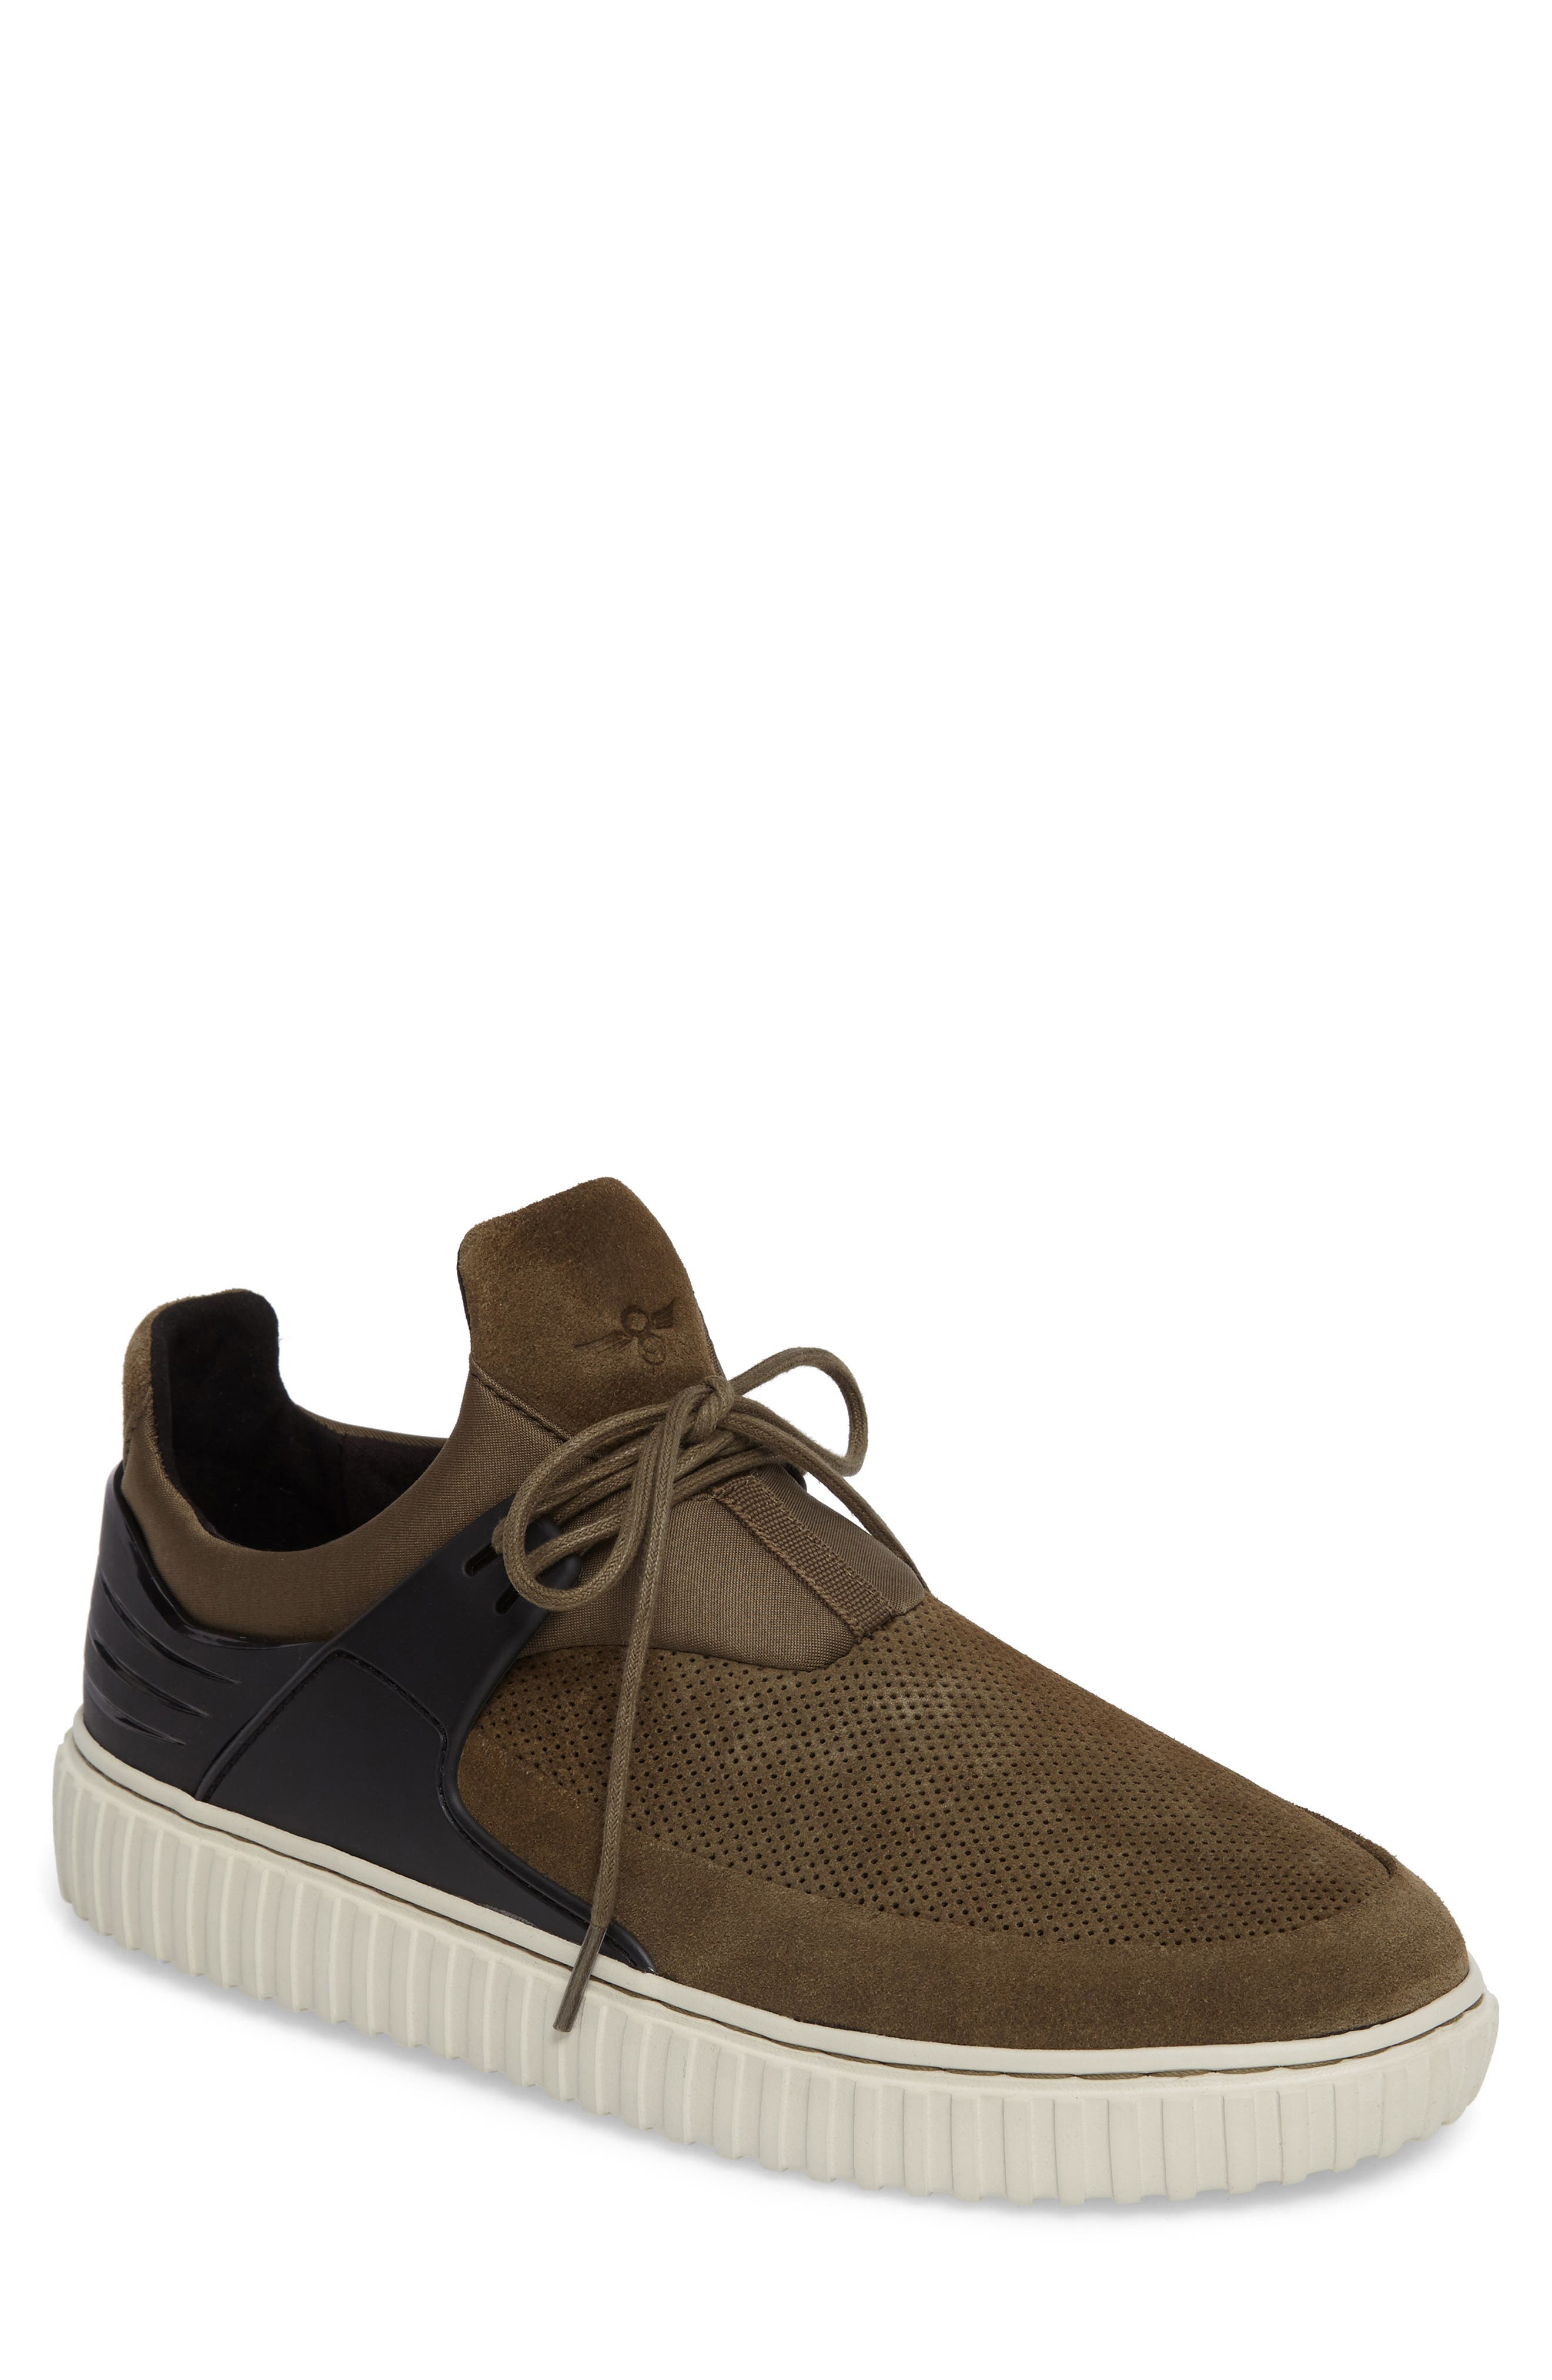 Creative Recreation Castucci Mid Sneaker (Men)